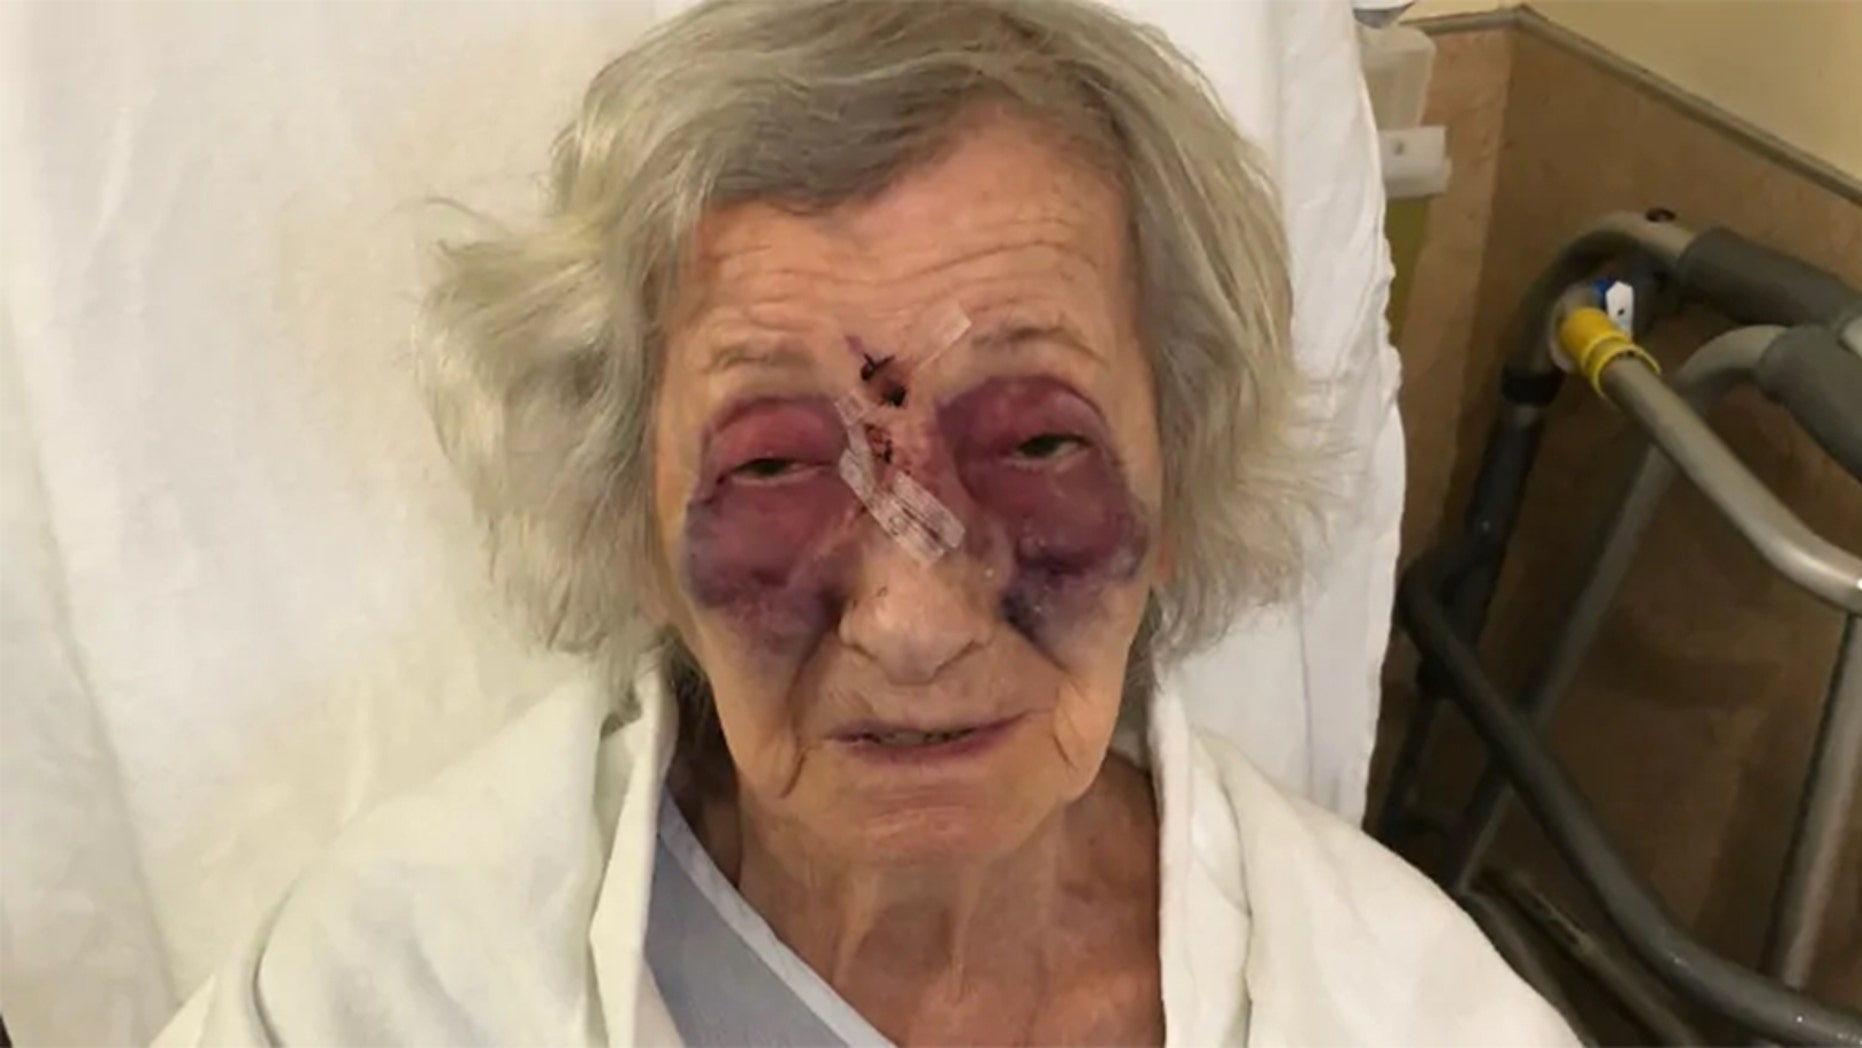 Hanka Fogelman, a 92-year-old Holocaust survivor living in Canada, says she was attacked in November while riding in a cab provided by a public transportation service.